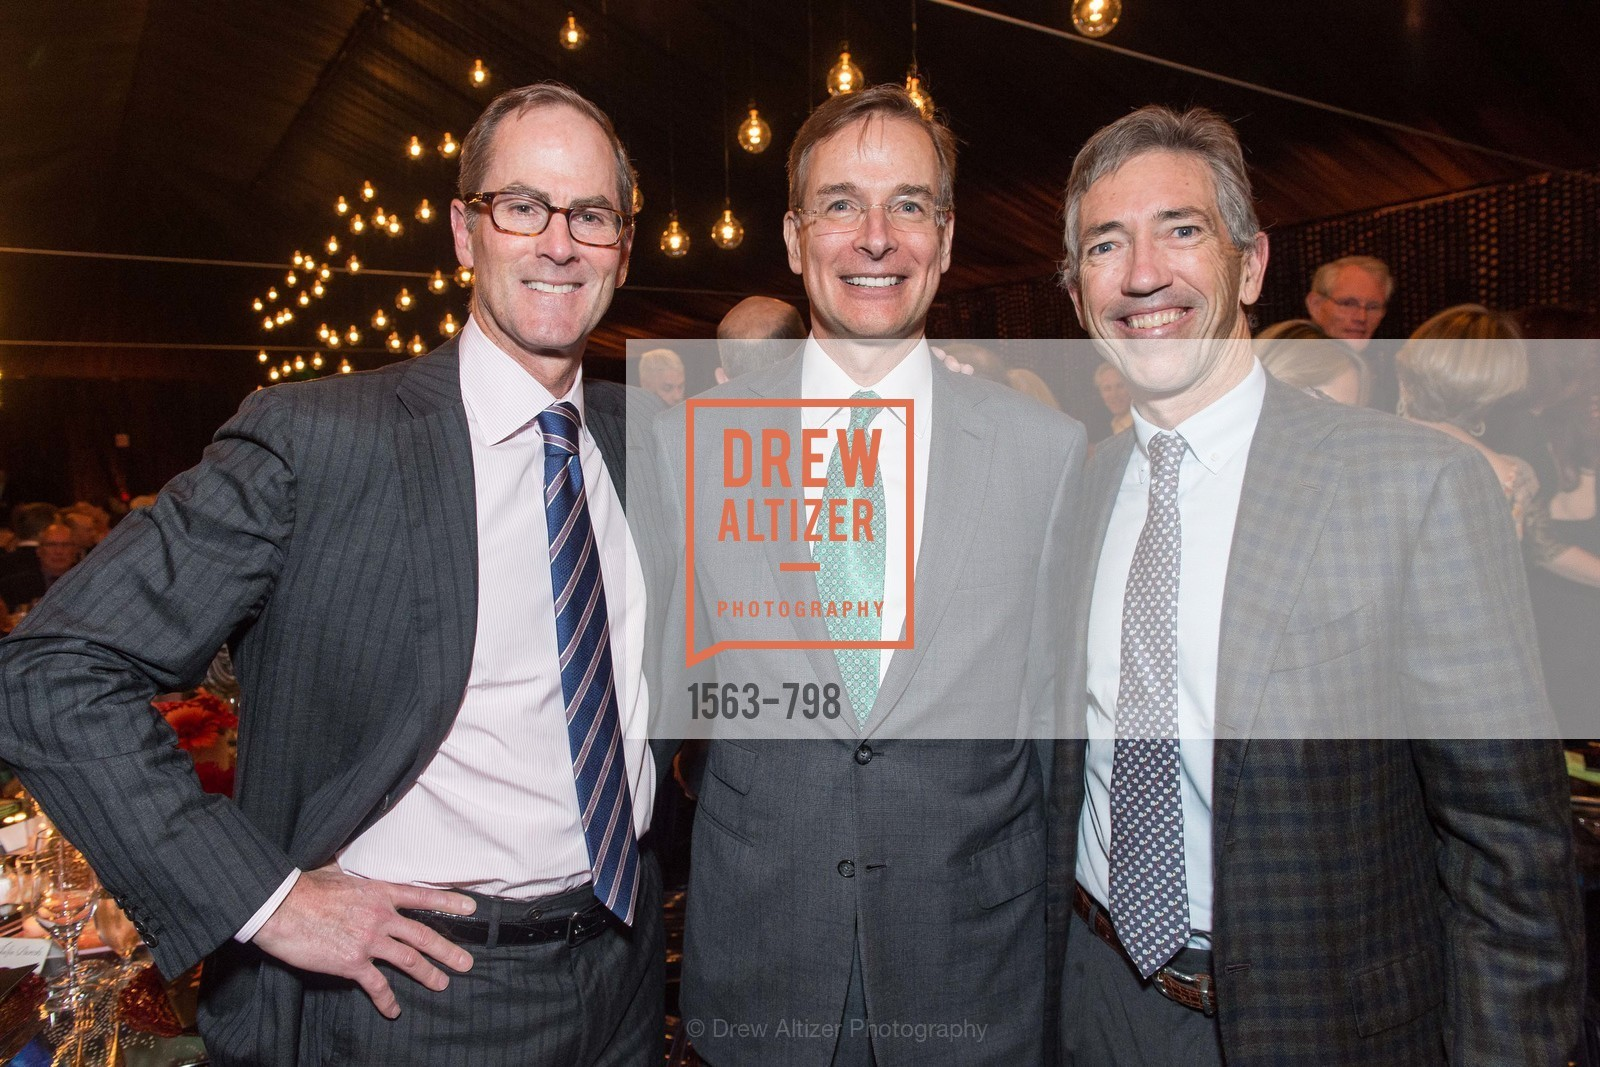 Matt Gilhuly, John Atwater, Matt Barger, CALIFORNIA ACADEMY OF SCIENCES - Big Bang Gala 2015, US, April 23rd, 2015,Drew Altizer, Drew Altizer Photography, full-service agency, private events, San Francisco photographer, photographer california